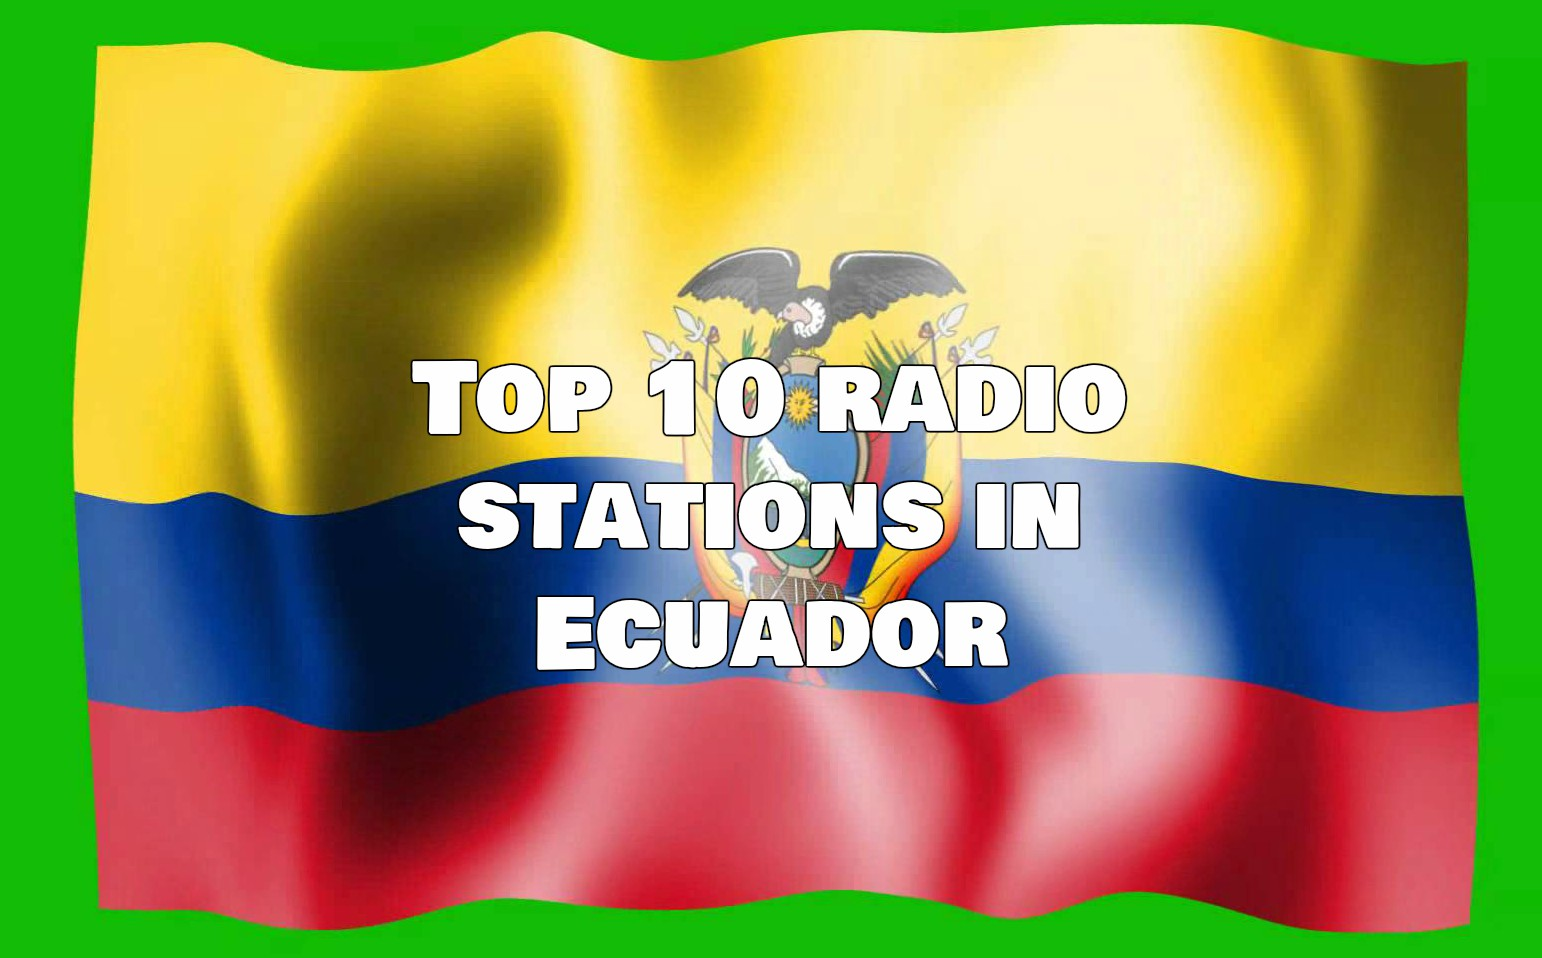 Top 10 radio stations in Ecuador Live